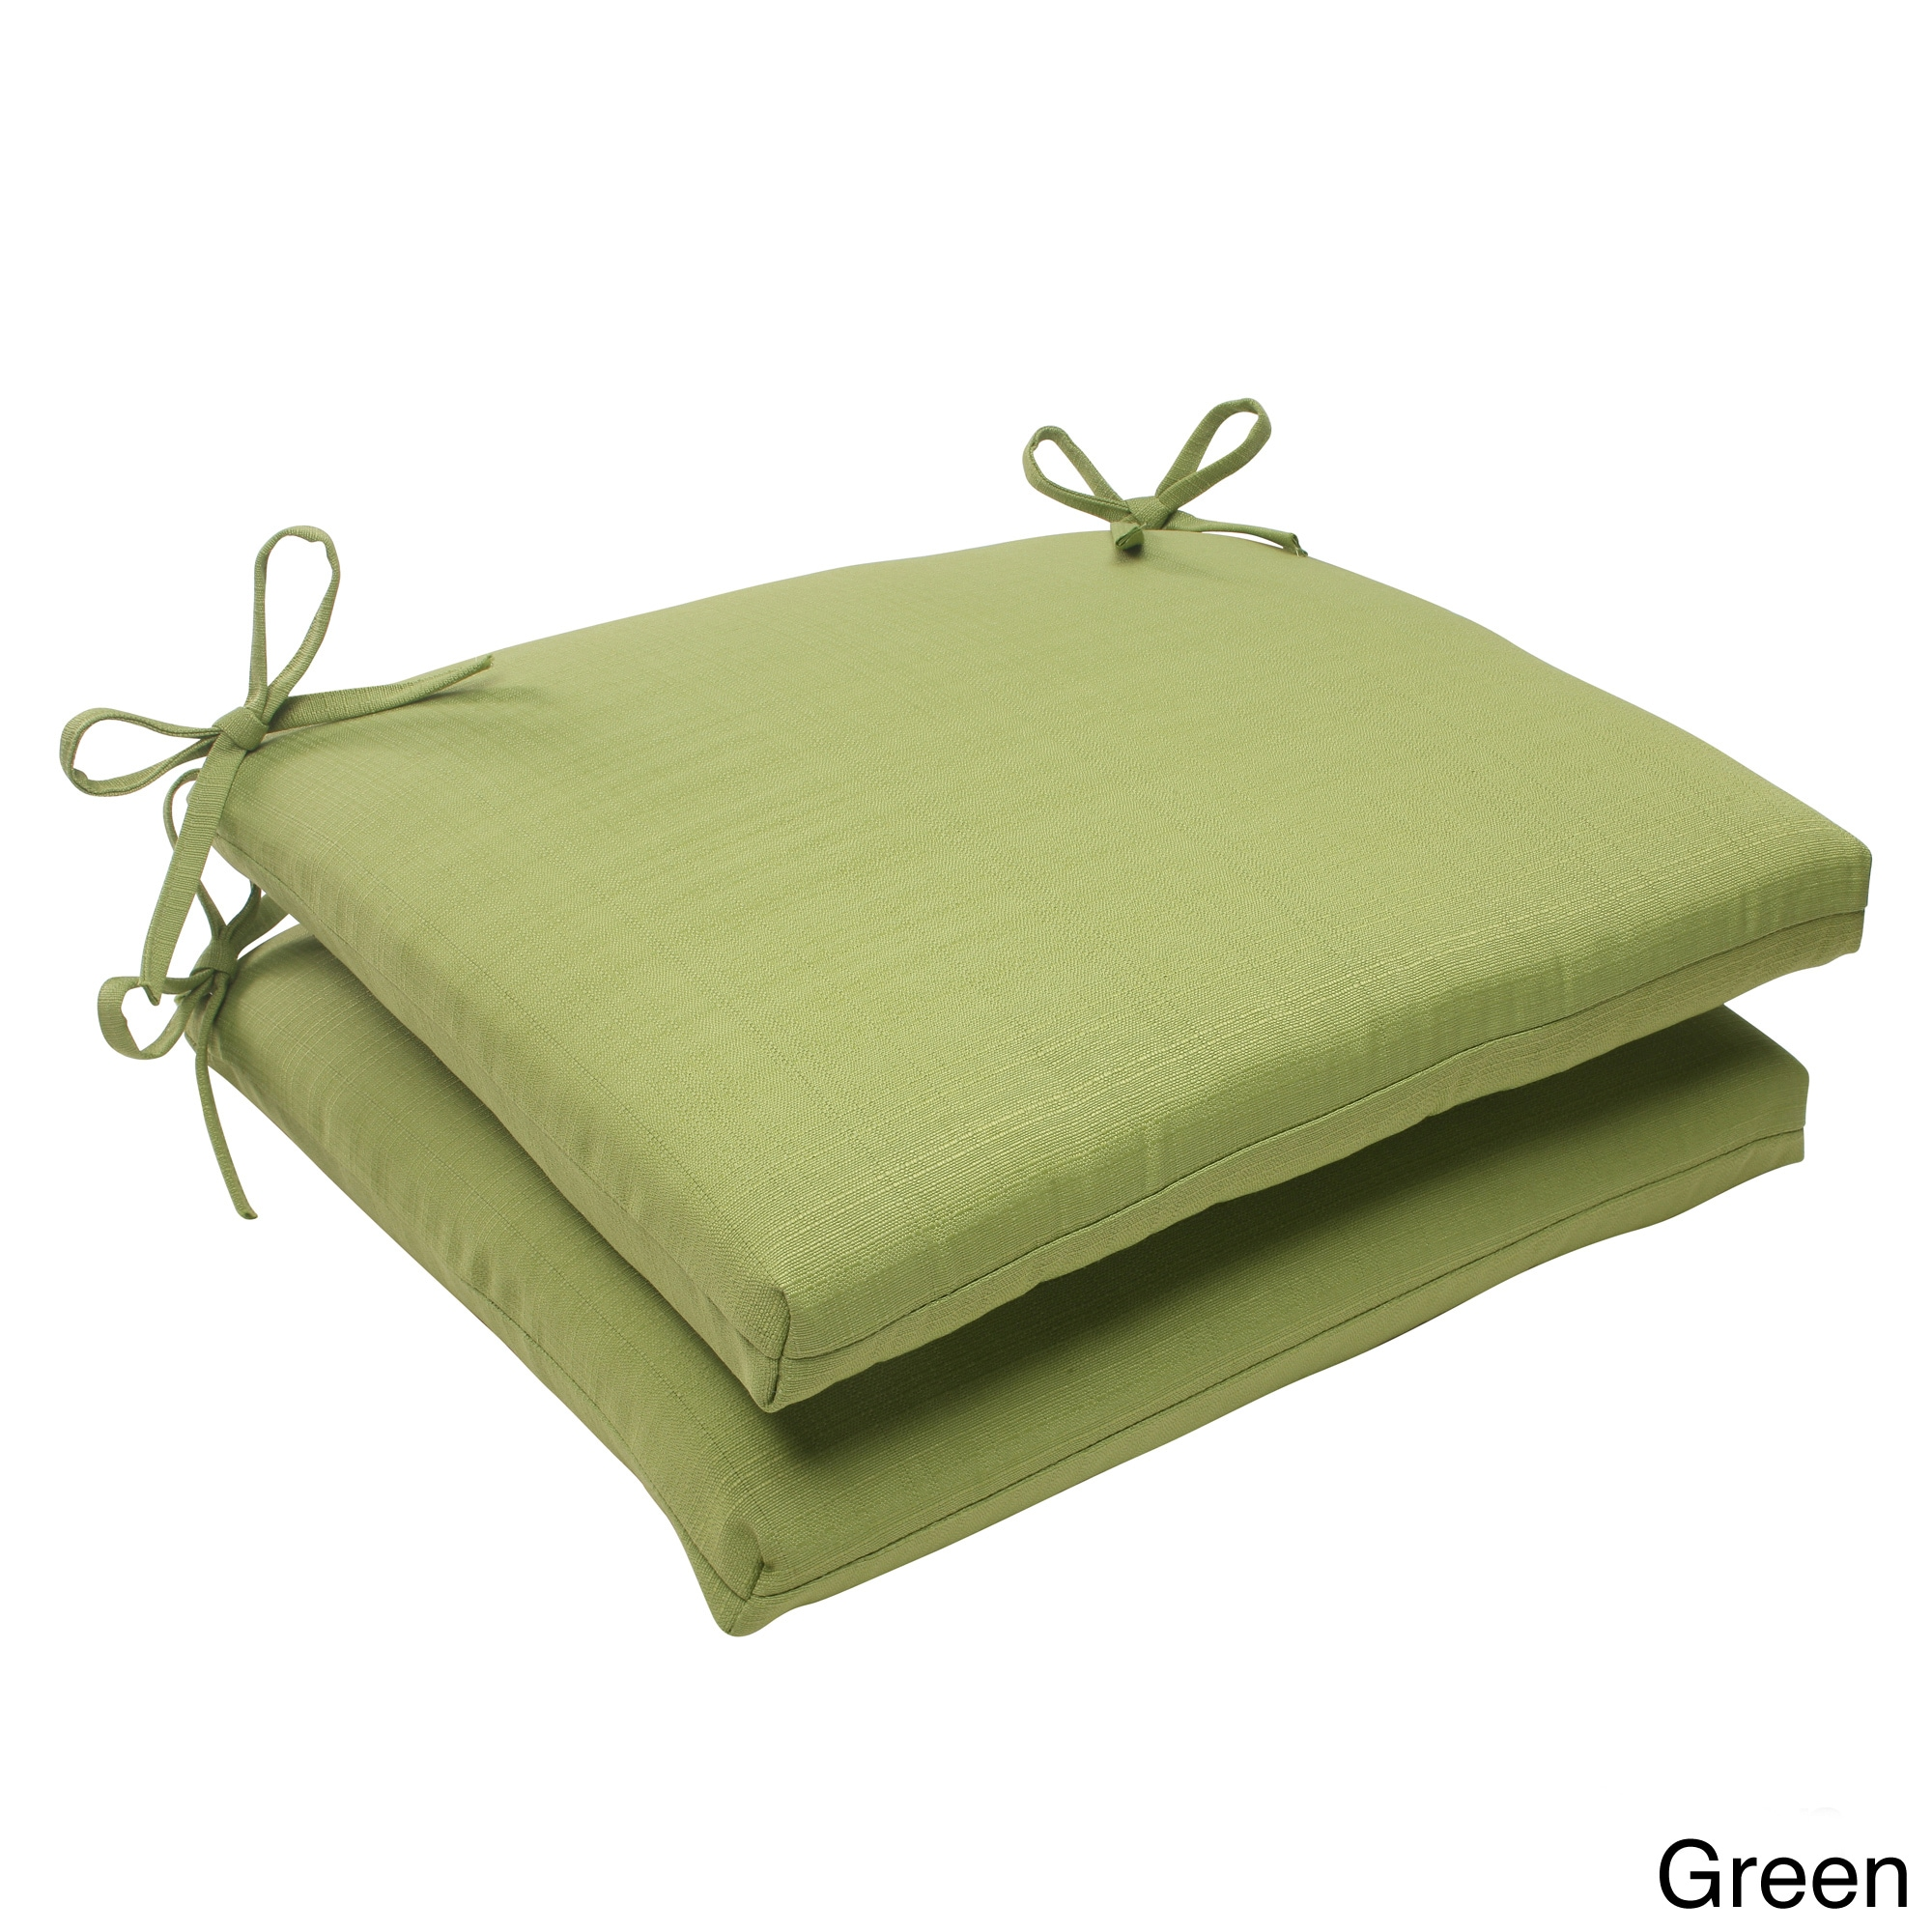 Pillow Perfect Pillow Perfect Outdoor Forsyth Squared Seat Cushion (Set of 2)